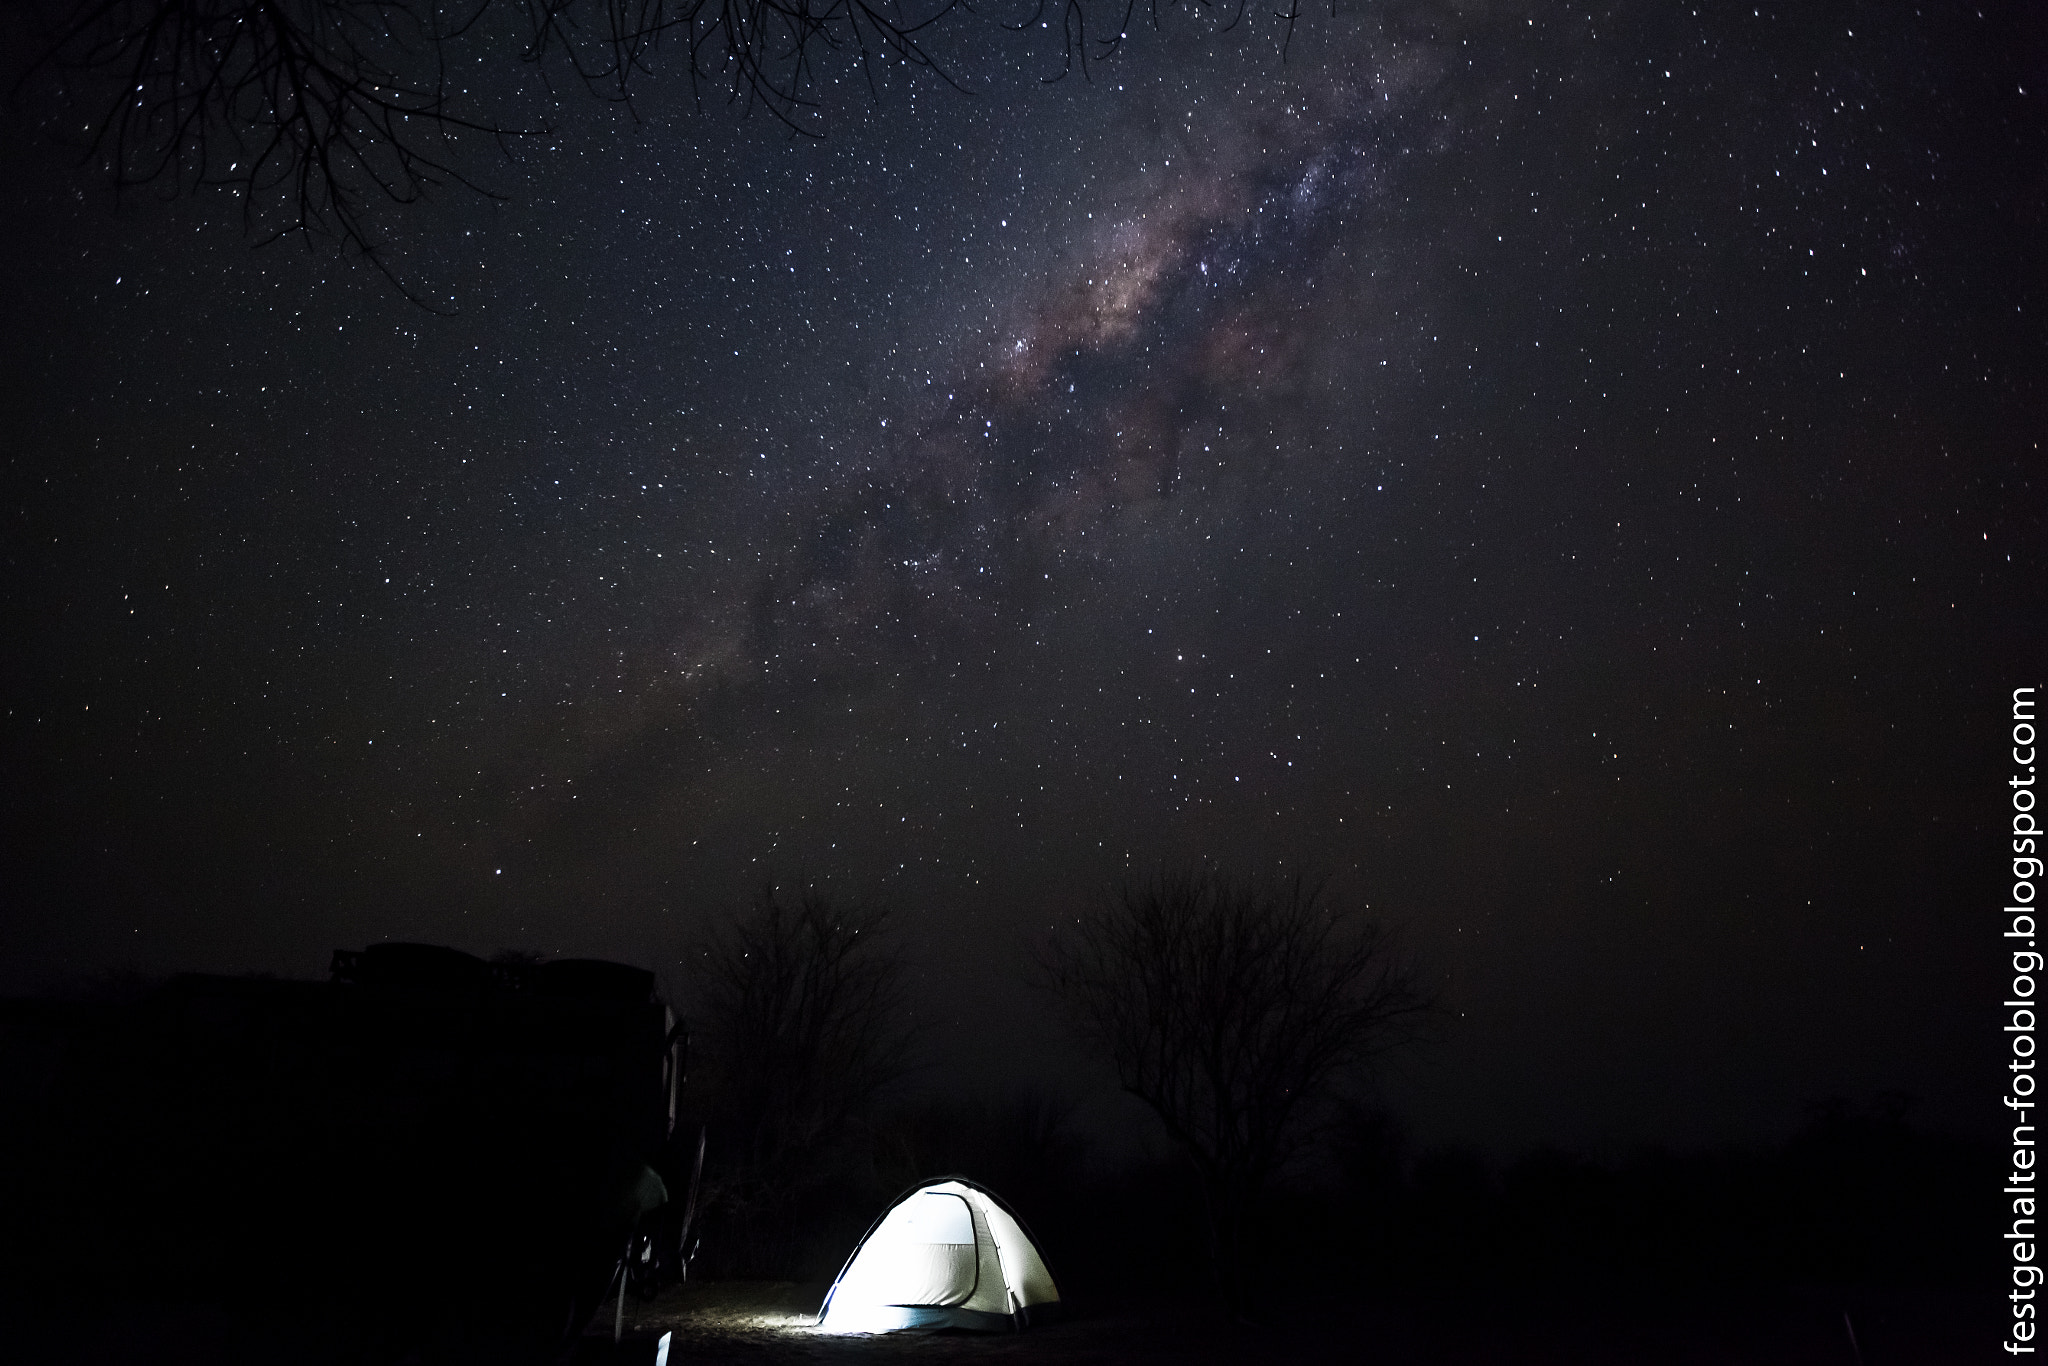 Photograph Starnight in Namibia by Daniel Westphal on 500px